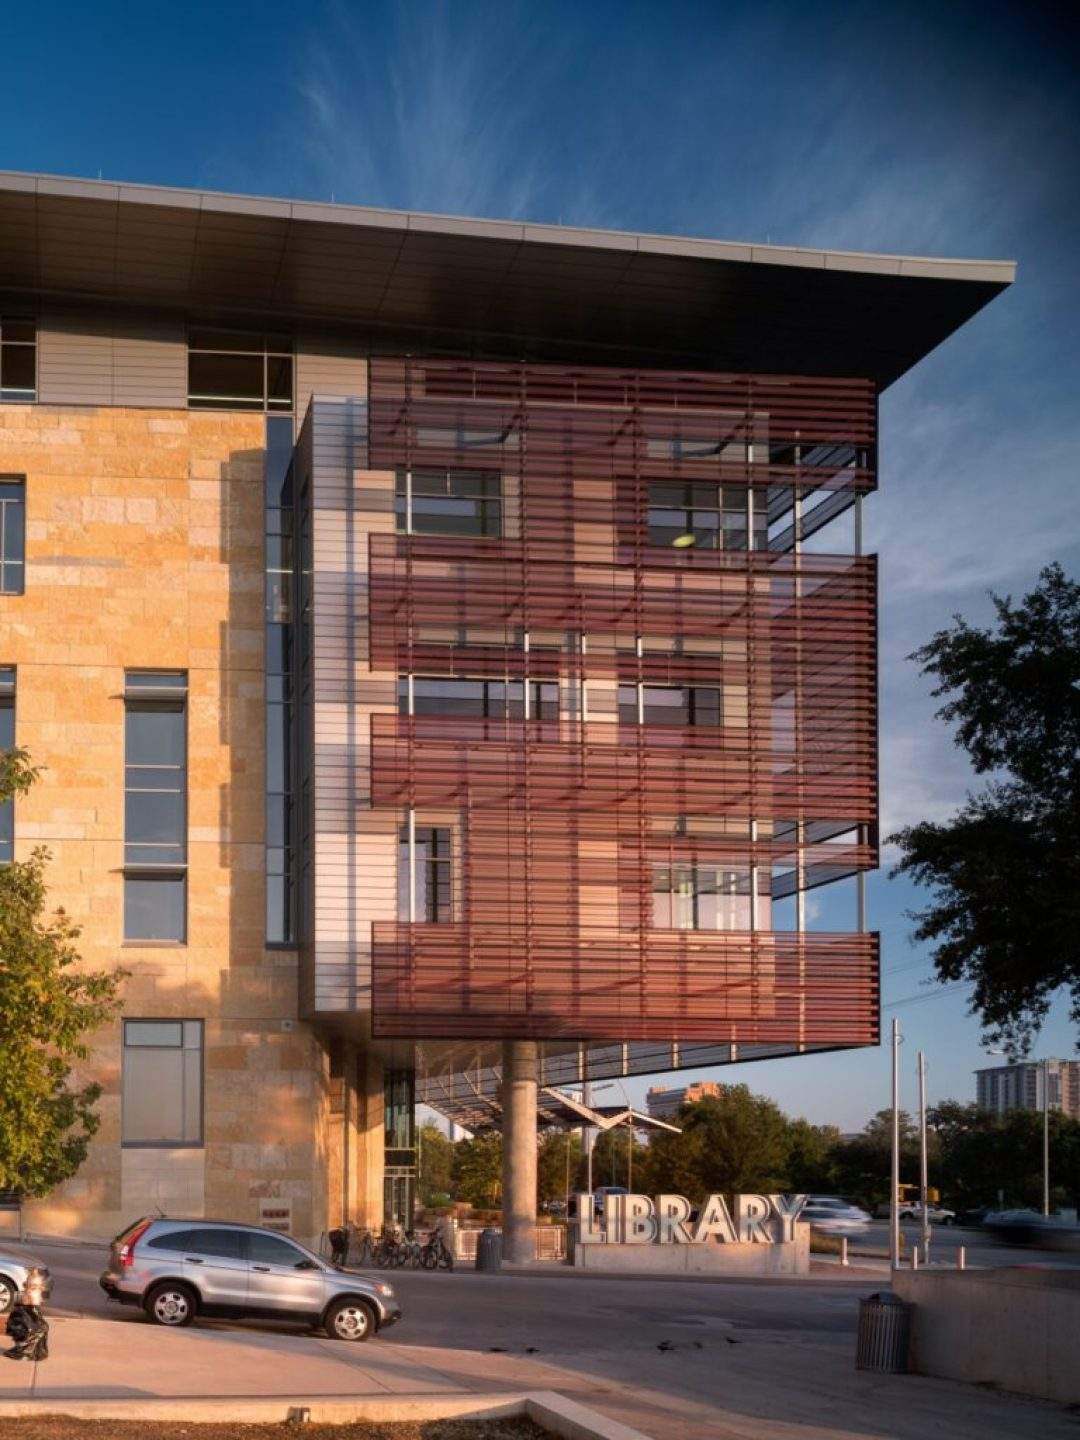 Perforated anodized aluminum is a façade design element in the recently constructed central library in Austin, Texas. Photo credit: Nic Lehoux, courtesy of Lorin Industries, Inc.